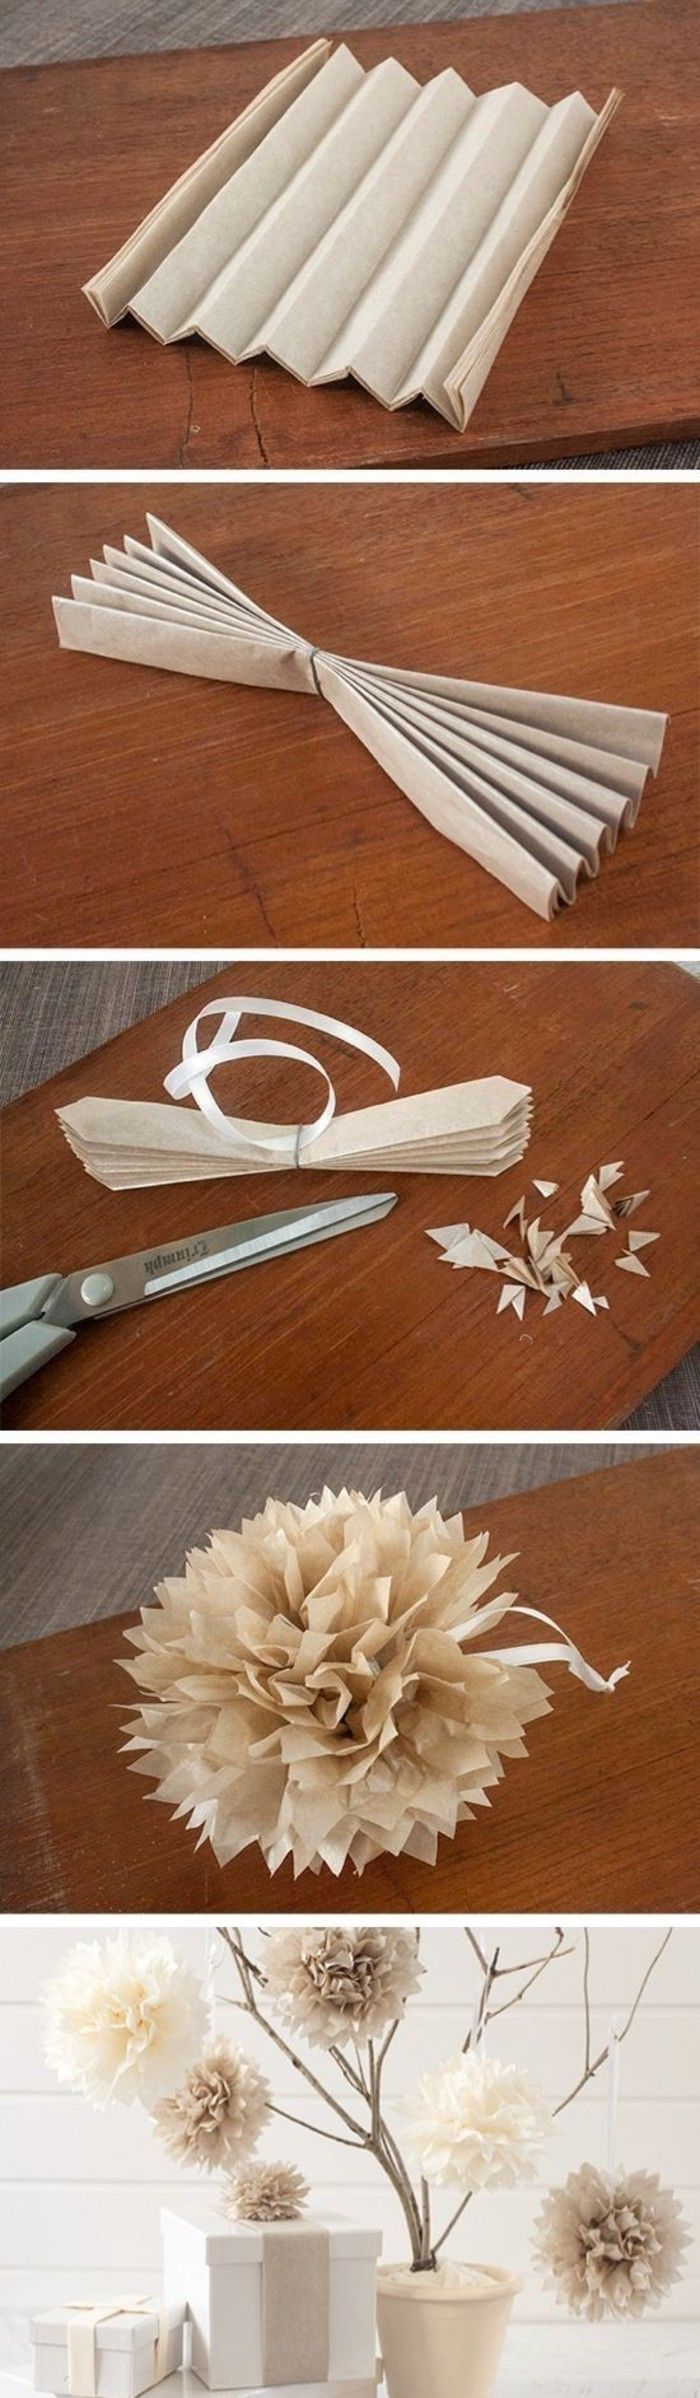 Best ideas for the house images on pinterest crafts